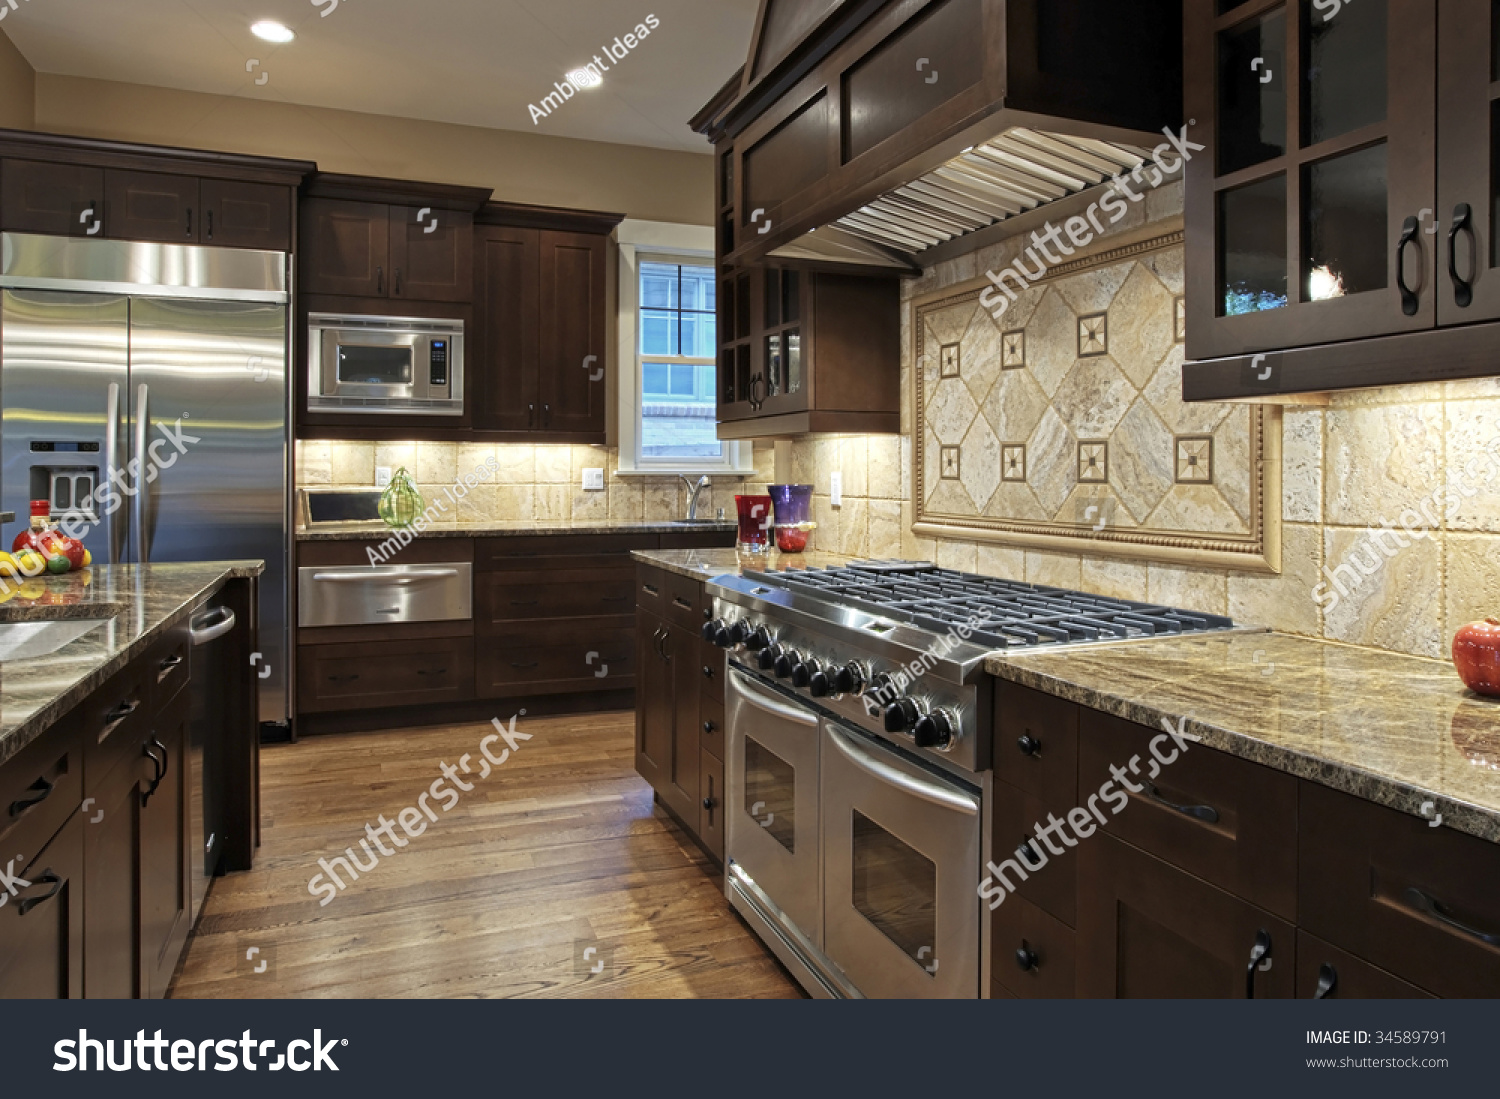 Granite Countertops For Kitchen Luxury Kitchen Granite Countertops Stock Photo 34589791 Shutterstock